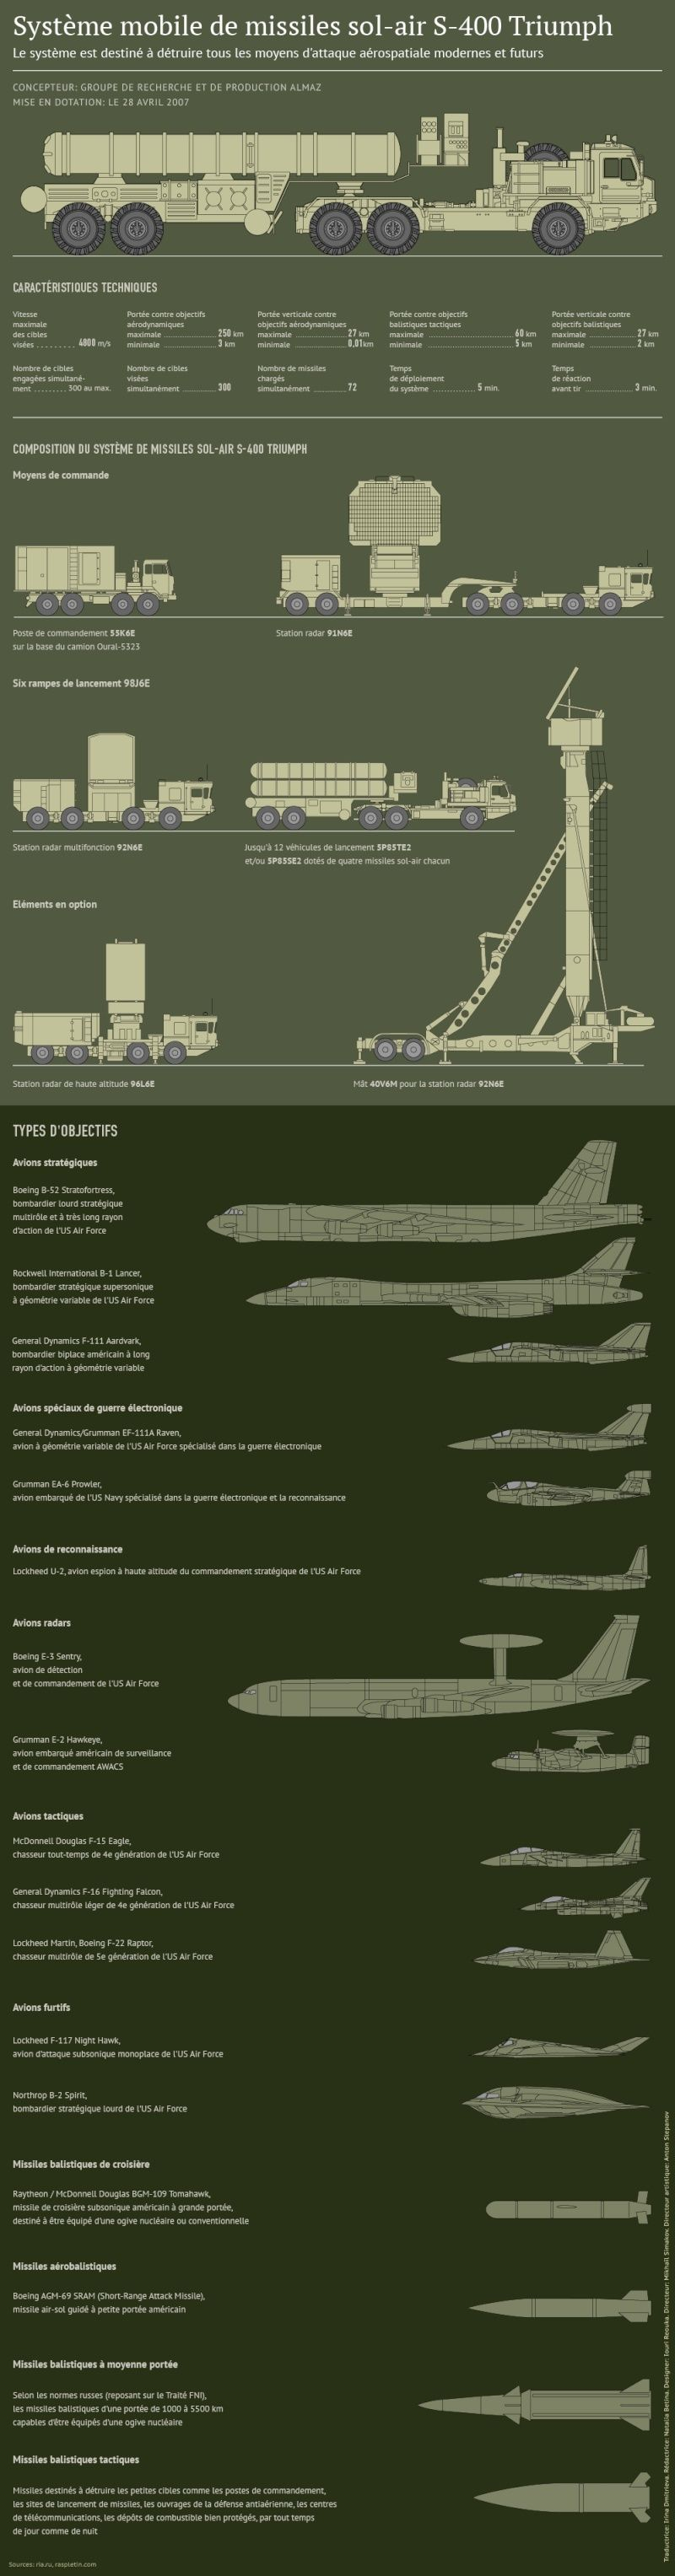 Armée Russe / Armed Forces of the Russian Federation - Page 5 116